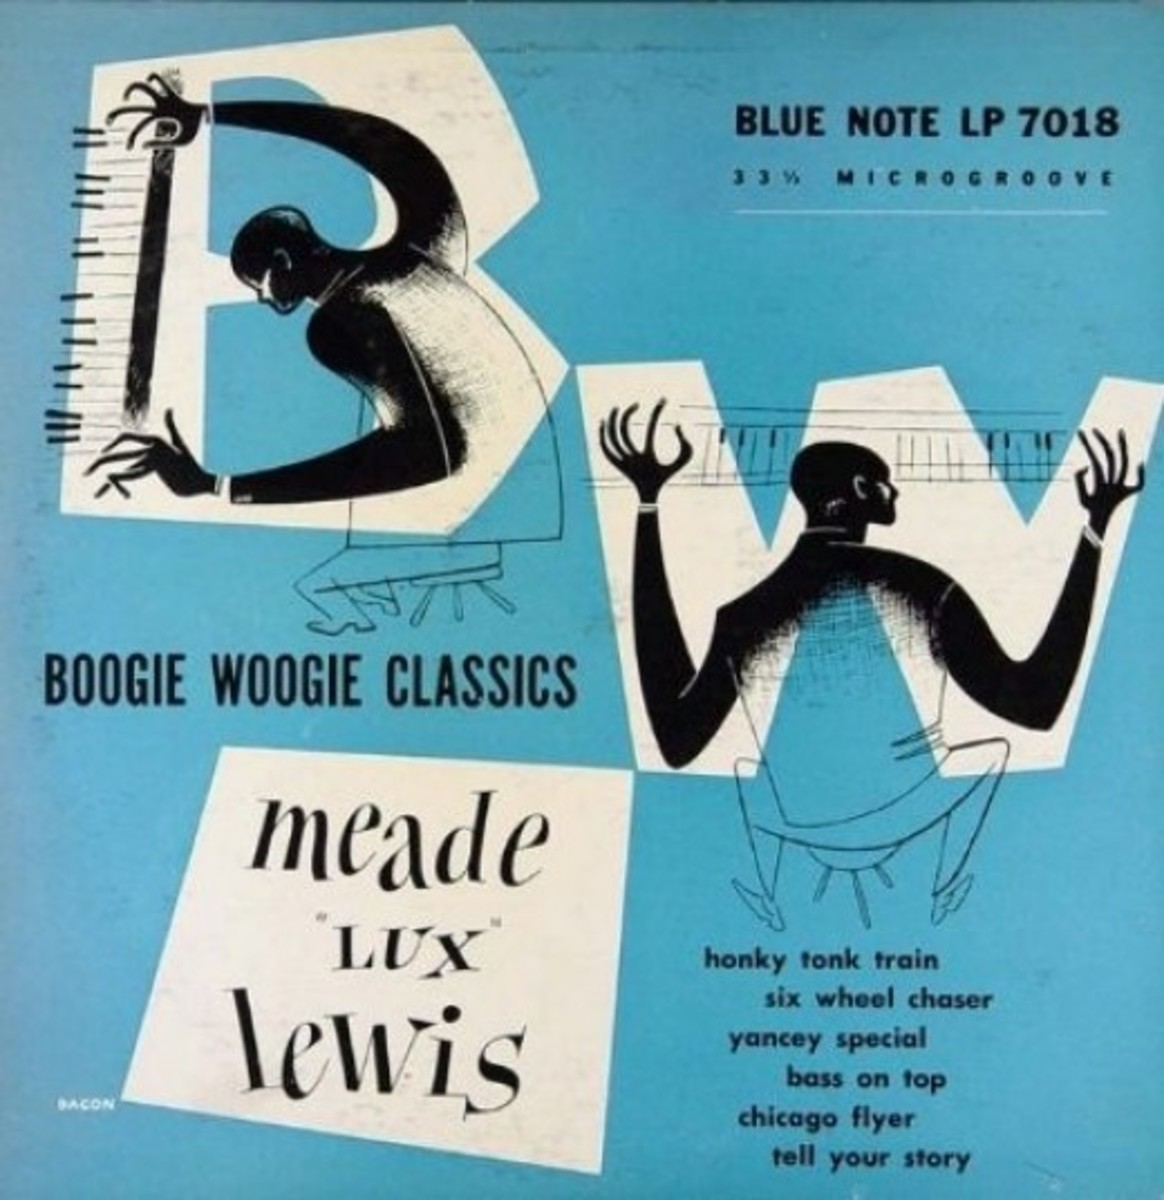 "Meade Lux Lewis ""Boogie Woogie Classics"" Blue Note Records BLP 7018 10"" LP Vinyl Microgroove Record (1951) Album Cover Art & Design by Paul Bacon"